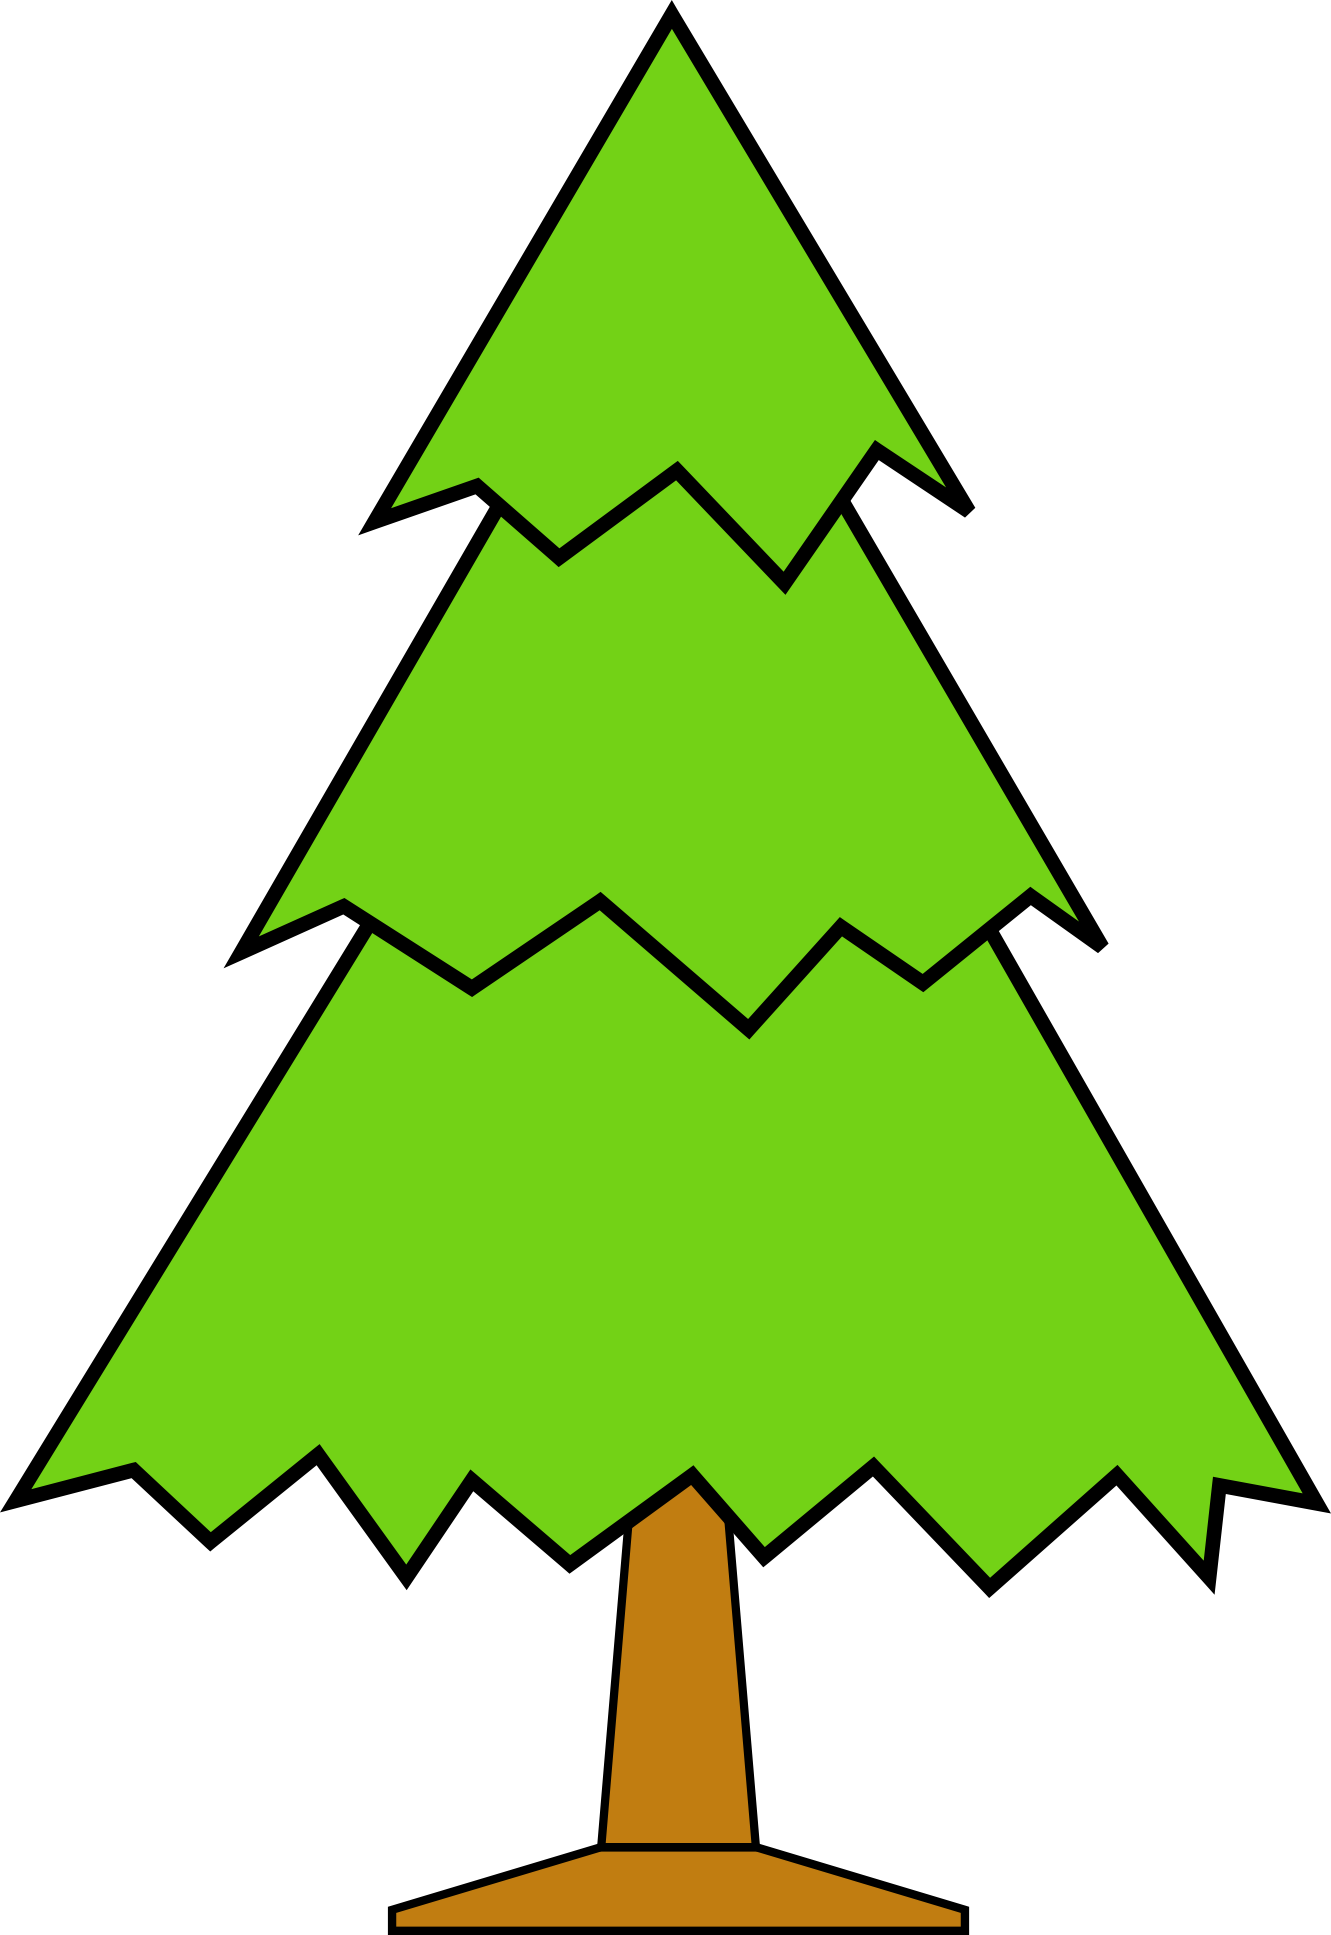 Clipart Christmas Tree With Presents   Clipart Panda   Free Clipart